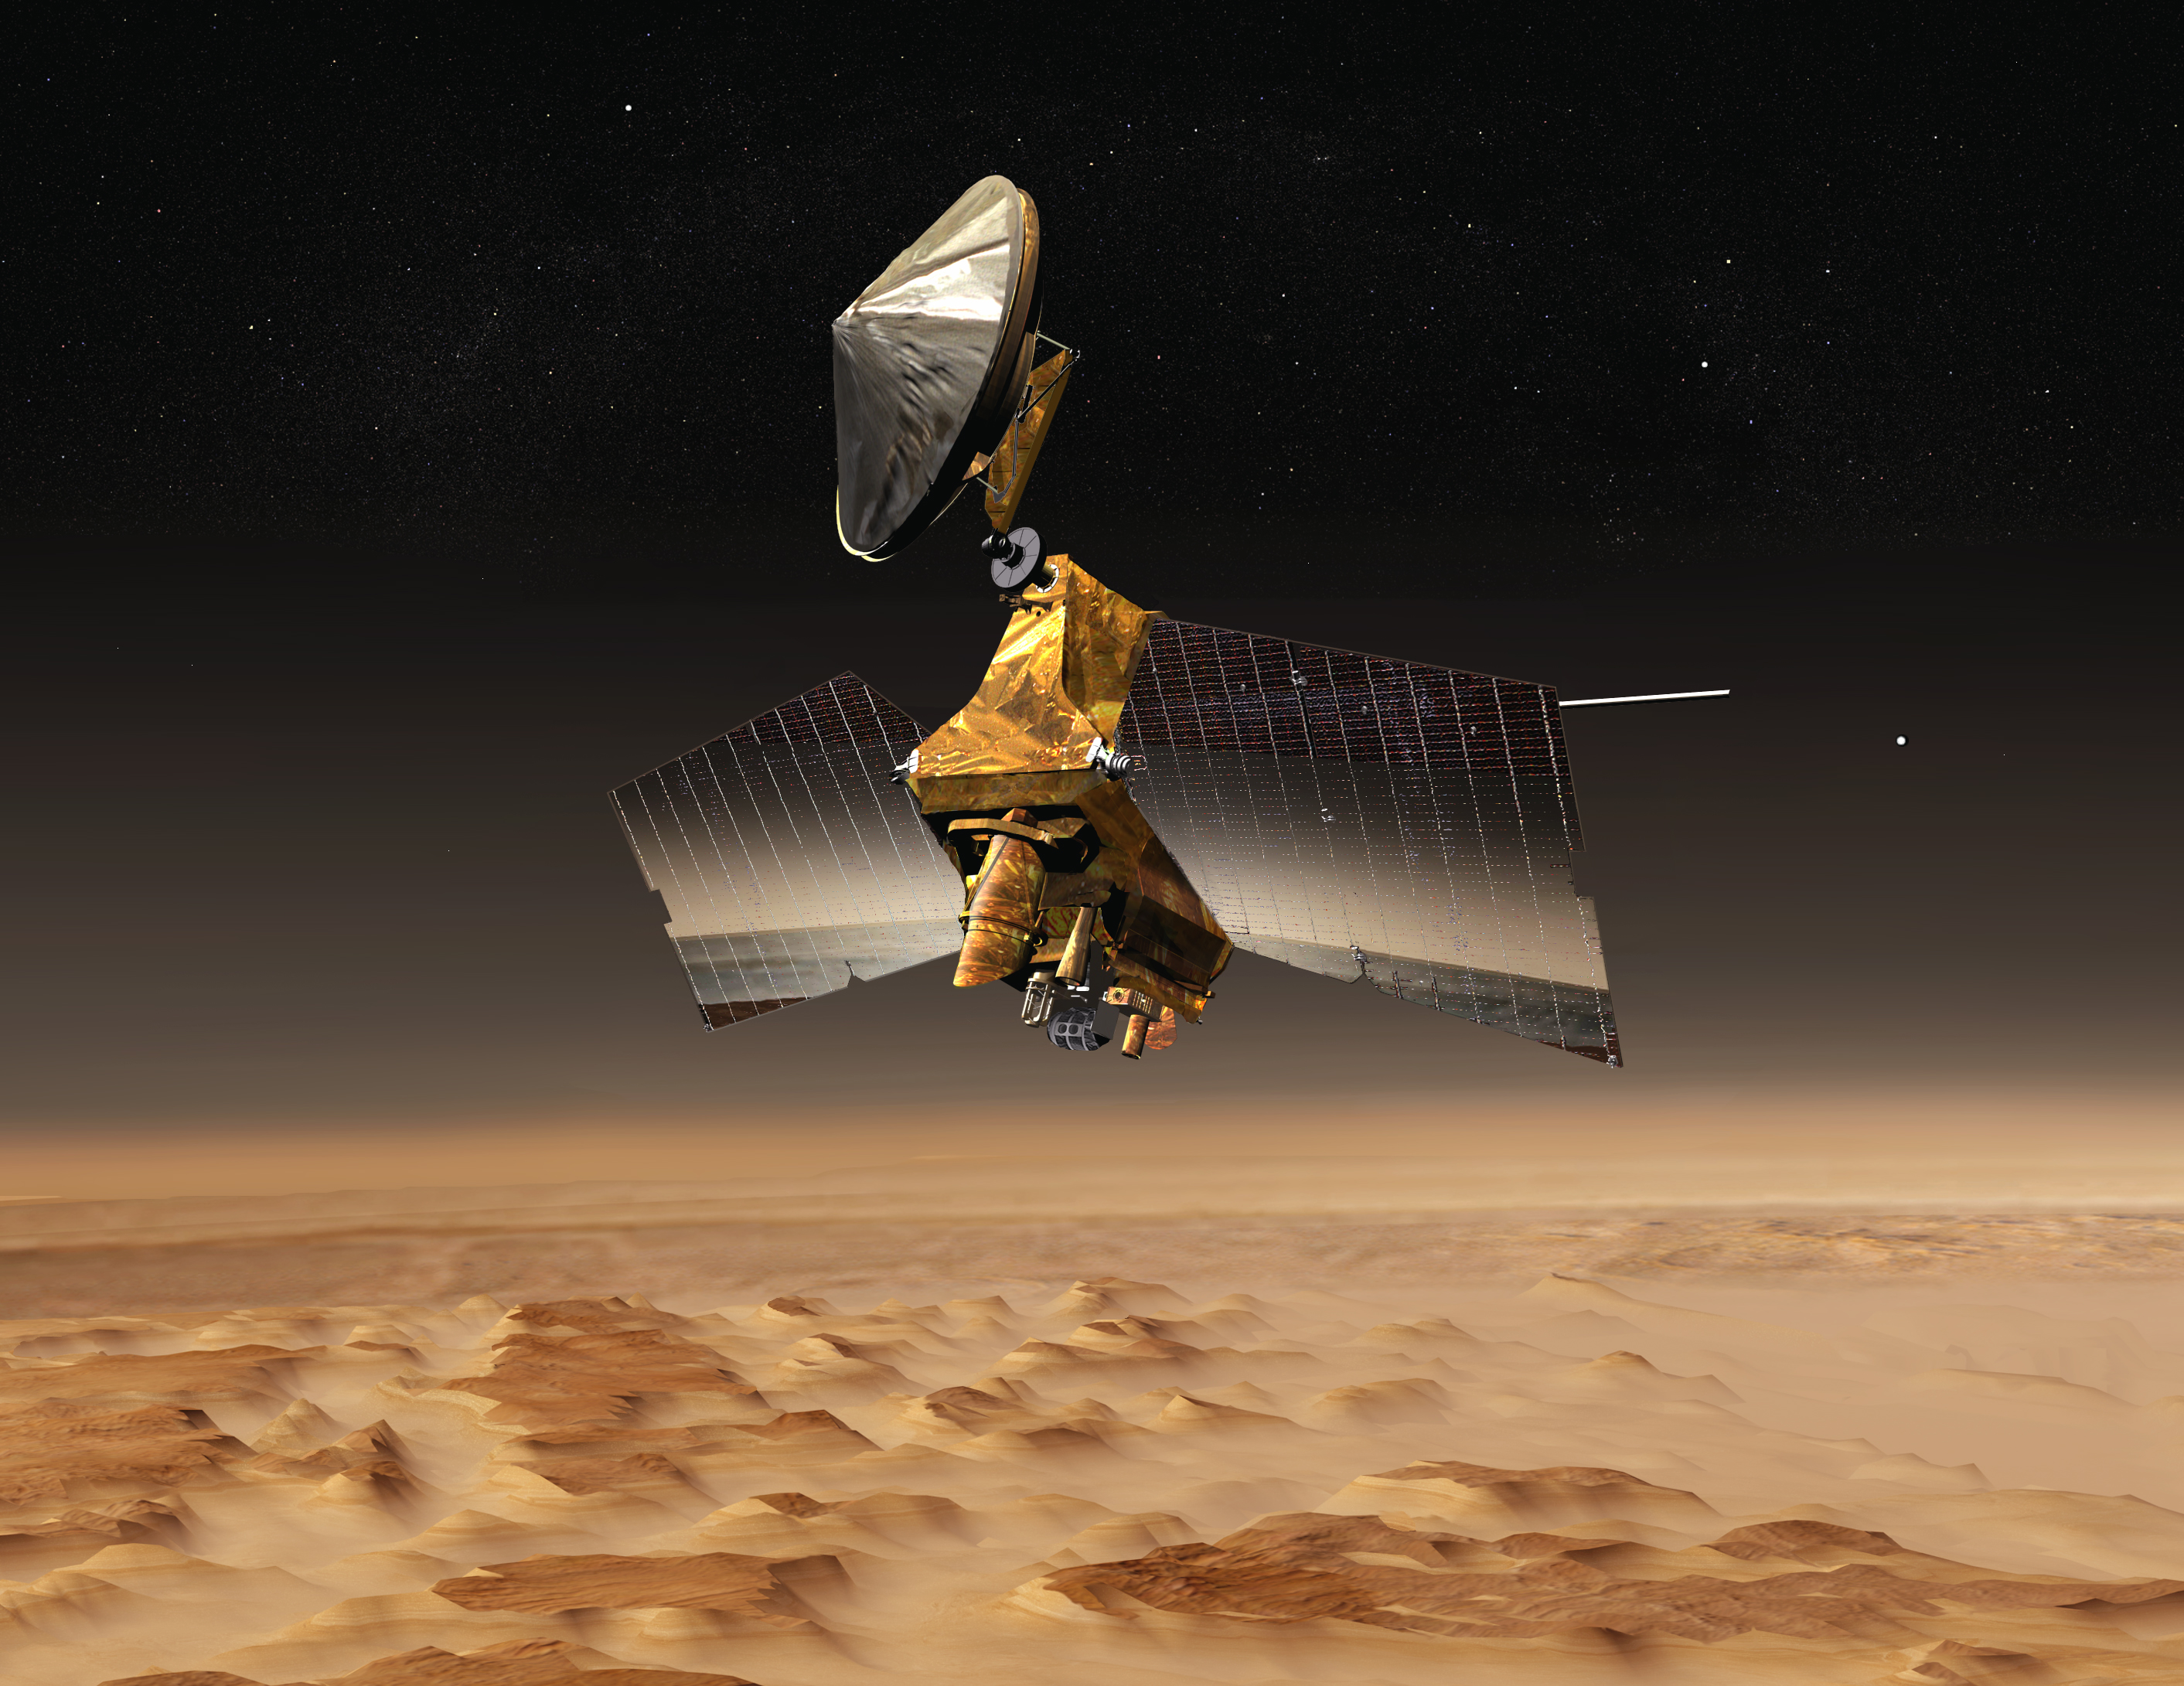 This artist's concept shows NASA's Mars Reconnaissance Orbiter mission over the red planet.